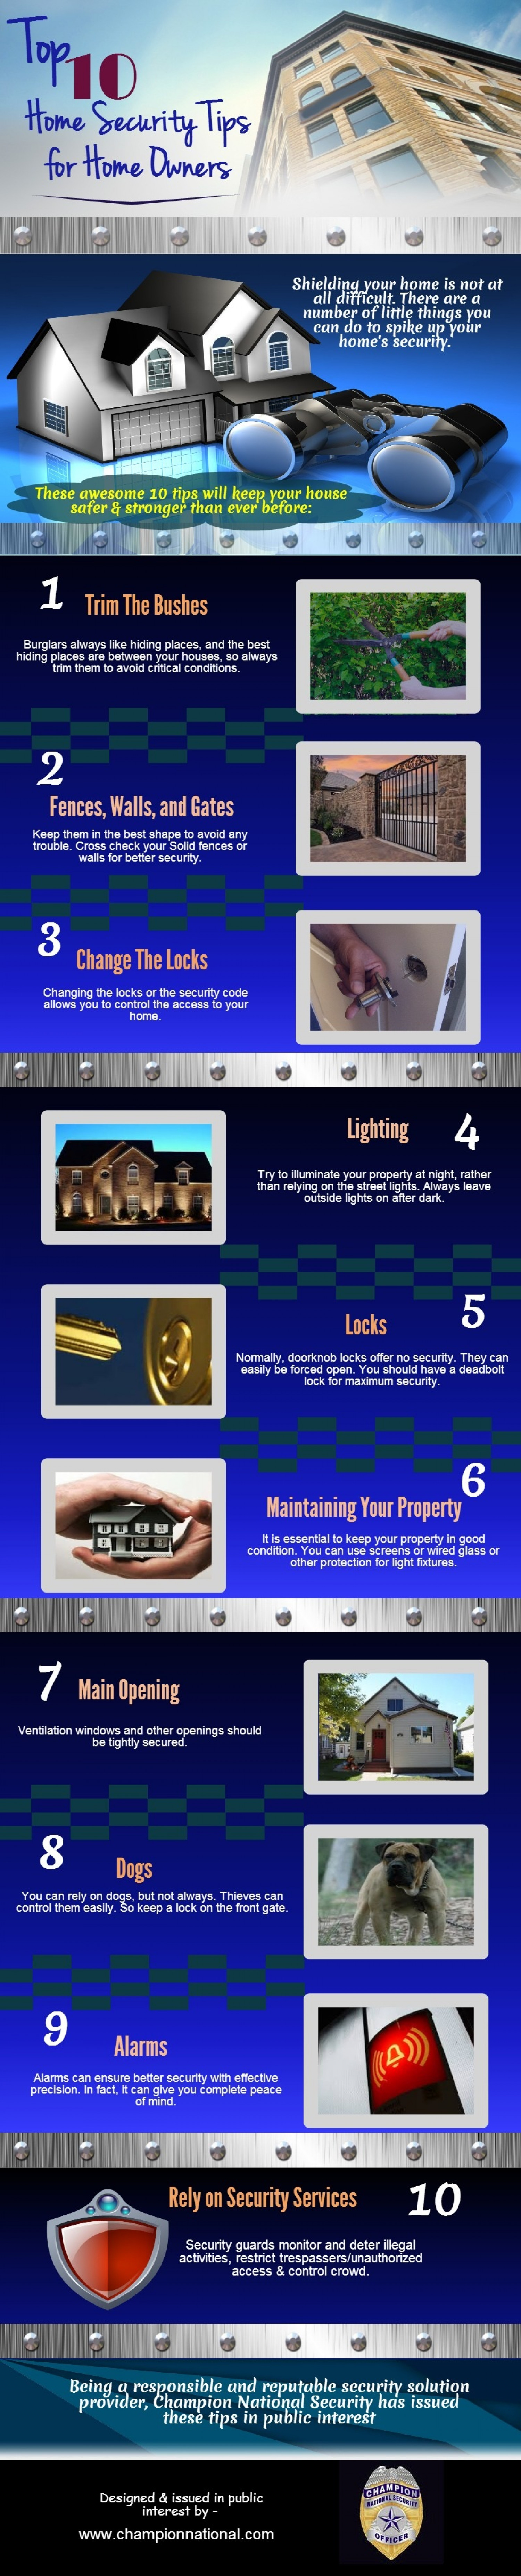 Top 10 Home Security Tips for Home Owners Infographic